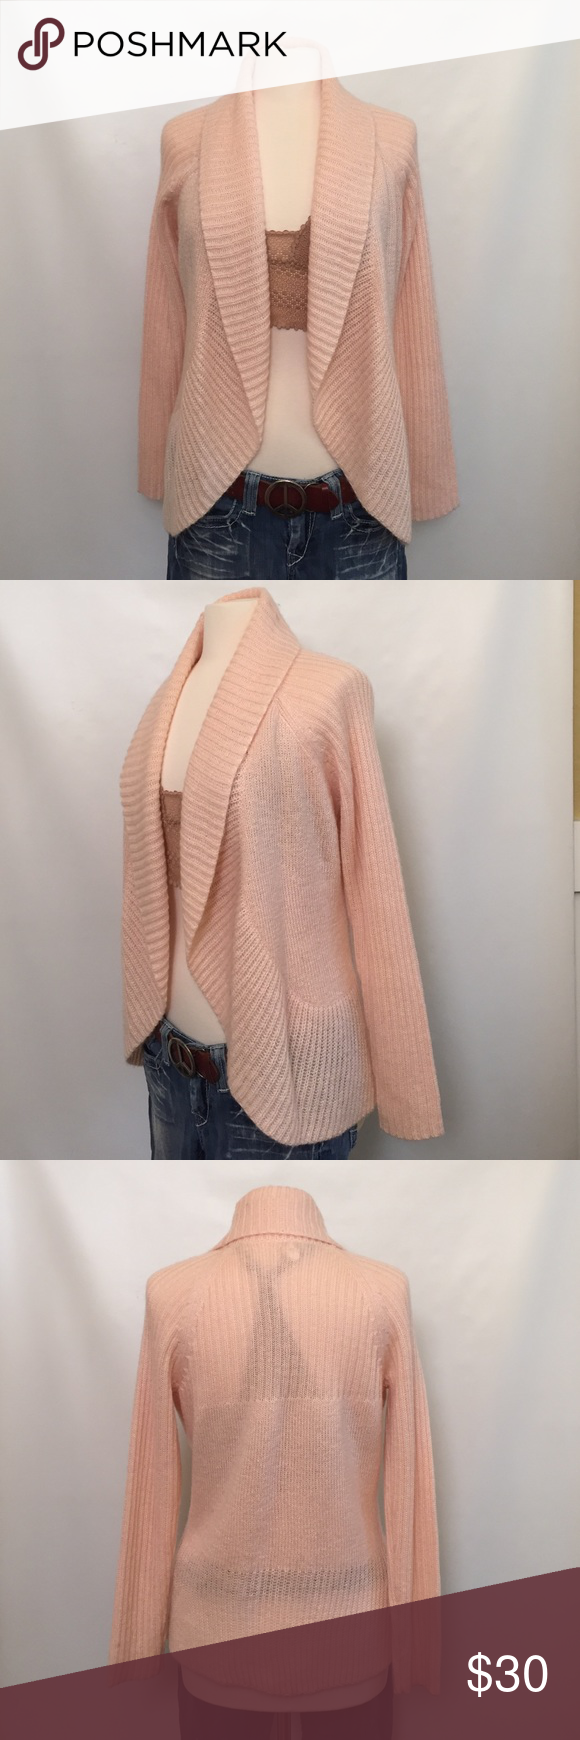 Chico's cardigan sweater Light pink, knit, open front cardigan sweater. In excellent condition. Size 1 Chico's Sweaters Cardigans